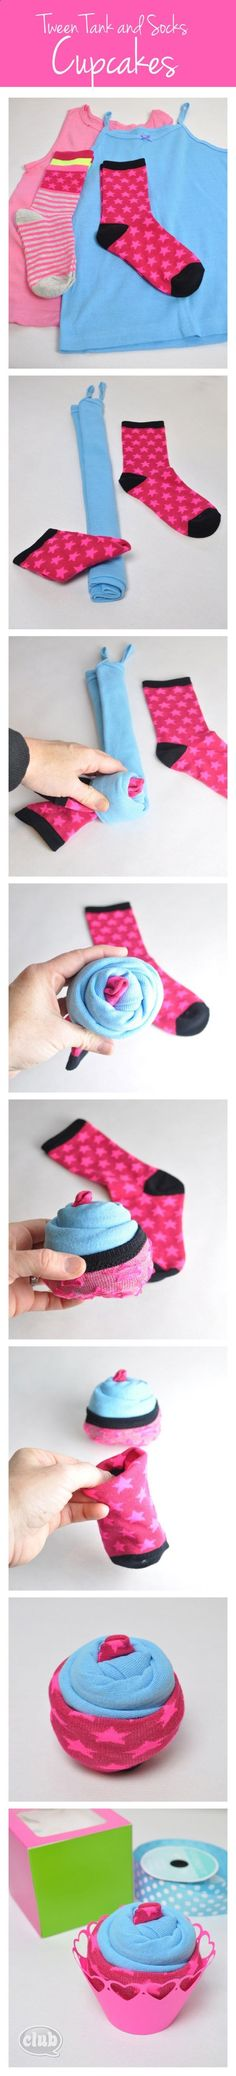 Homemade Cupcake Gift Box Idea for Tween Girl DIY - turn a colorful tank and a cool pair of socks into super cute cupcakes!